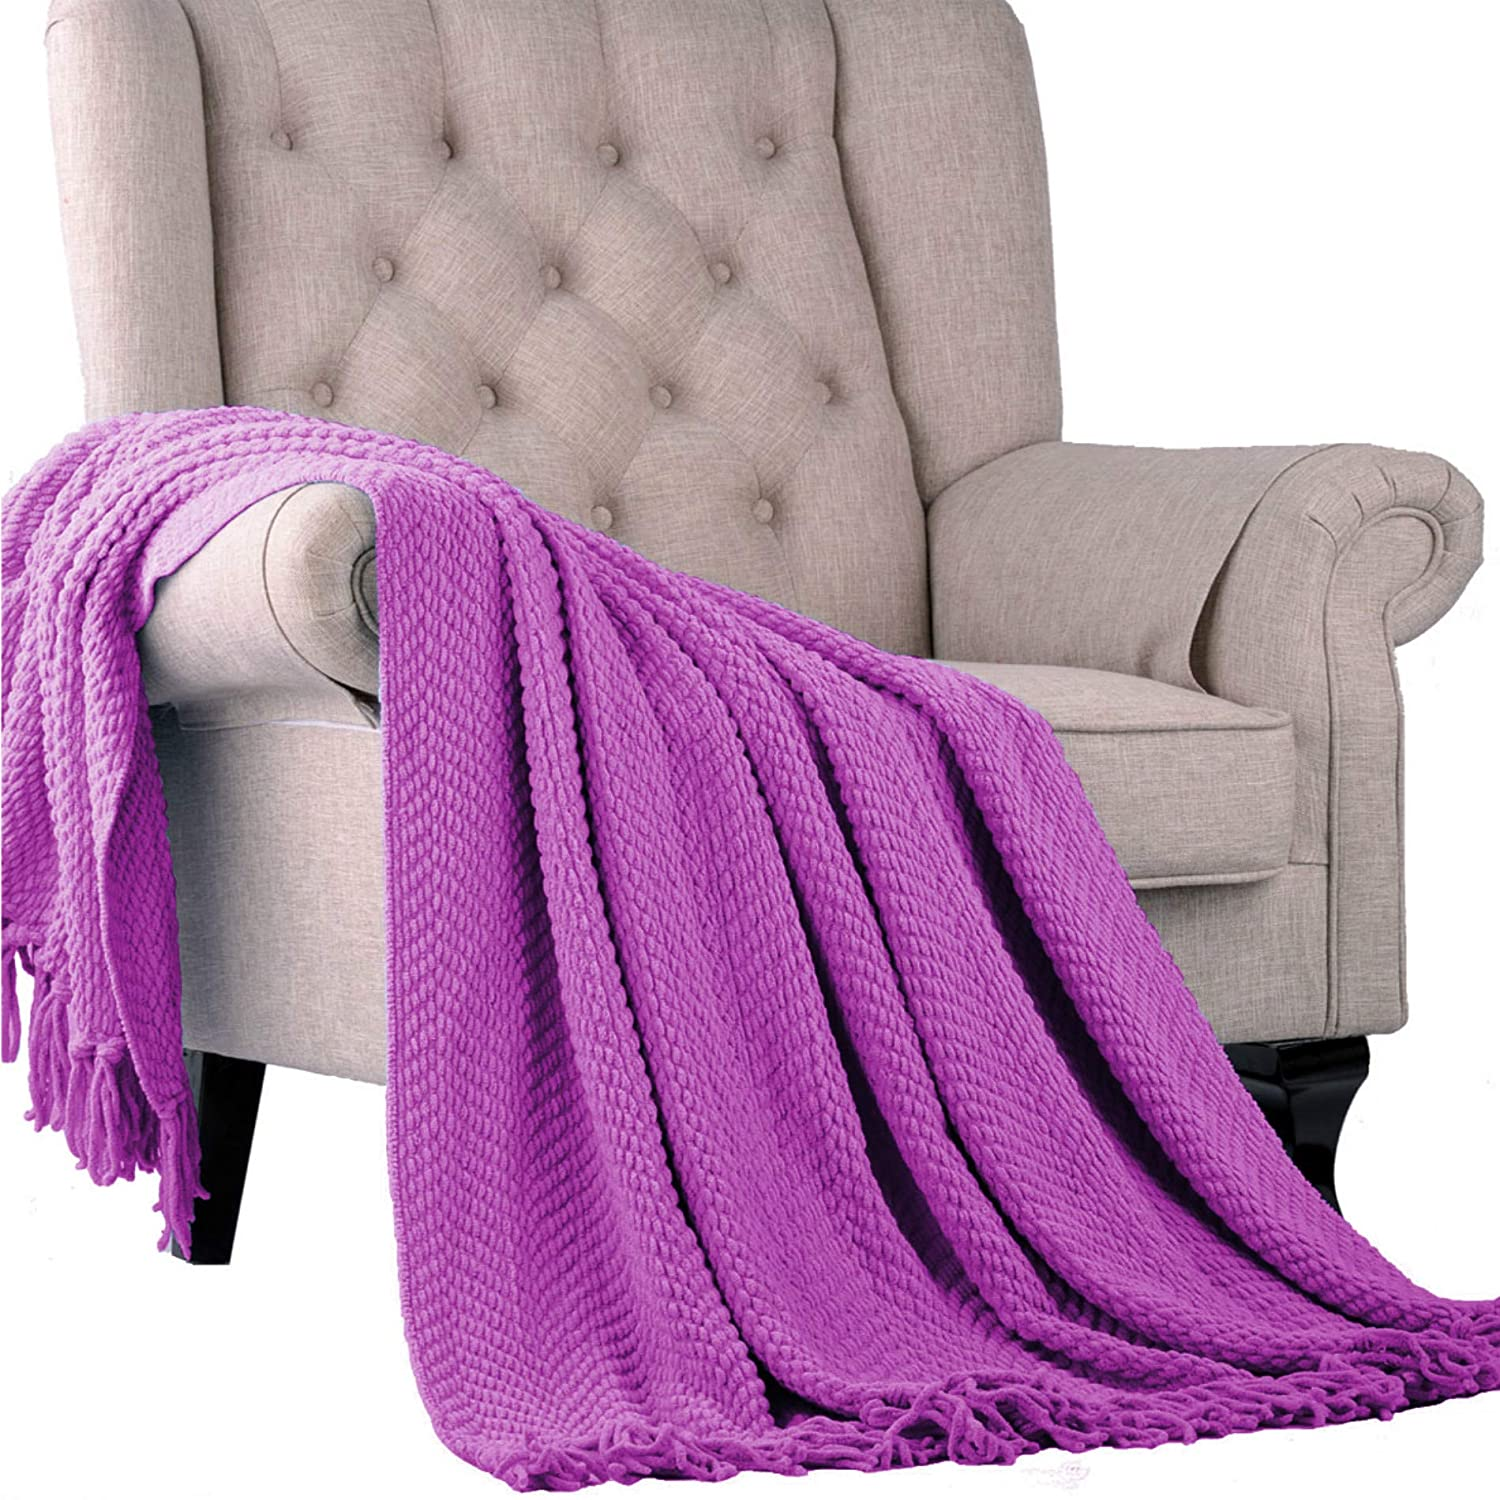 50 x 60 Home Soft Things Boon Knitted Tweed Throw Couch Cover Blanket Silver BNF Home BAF131205TT-SI